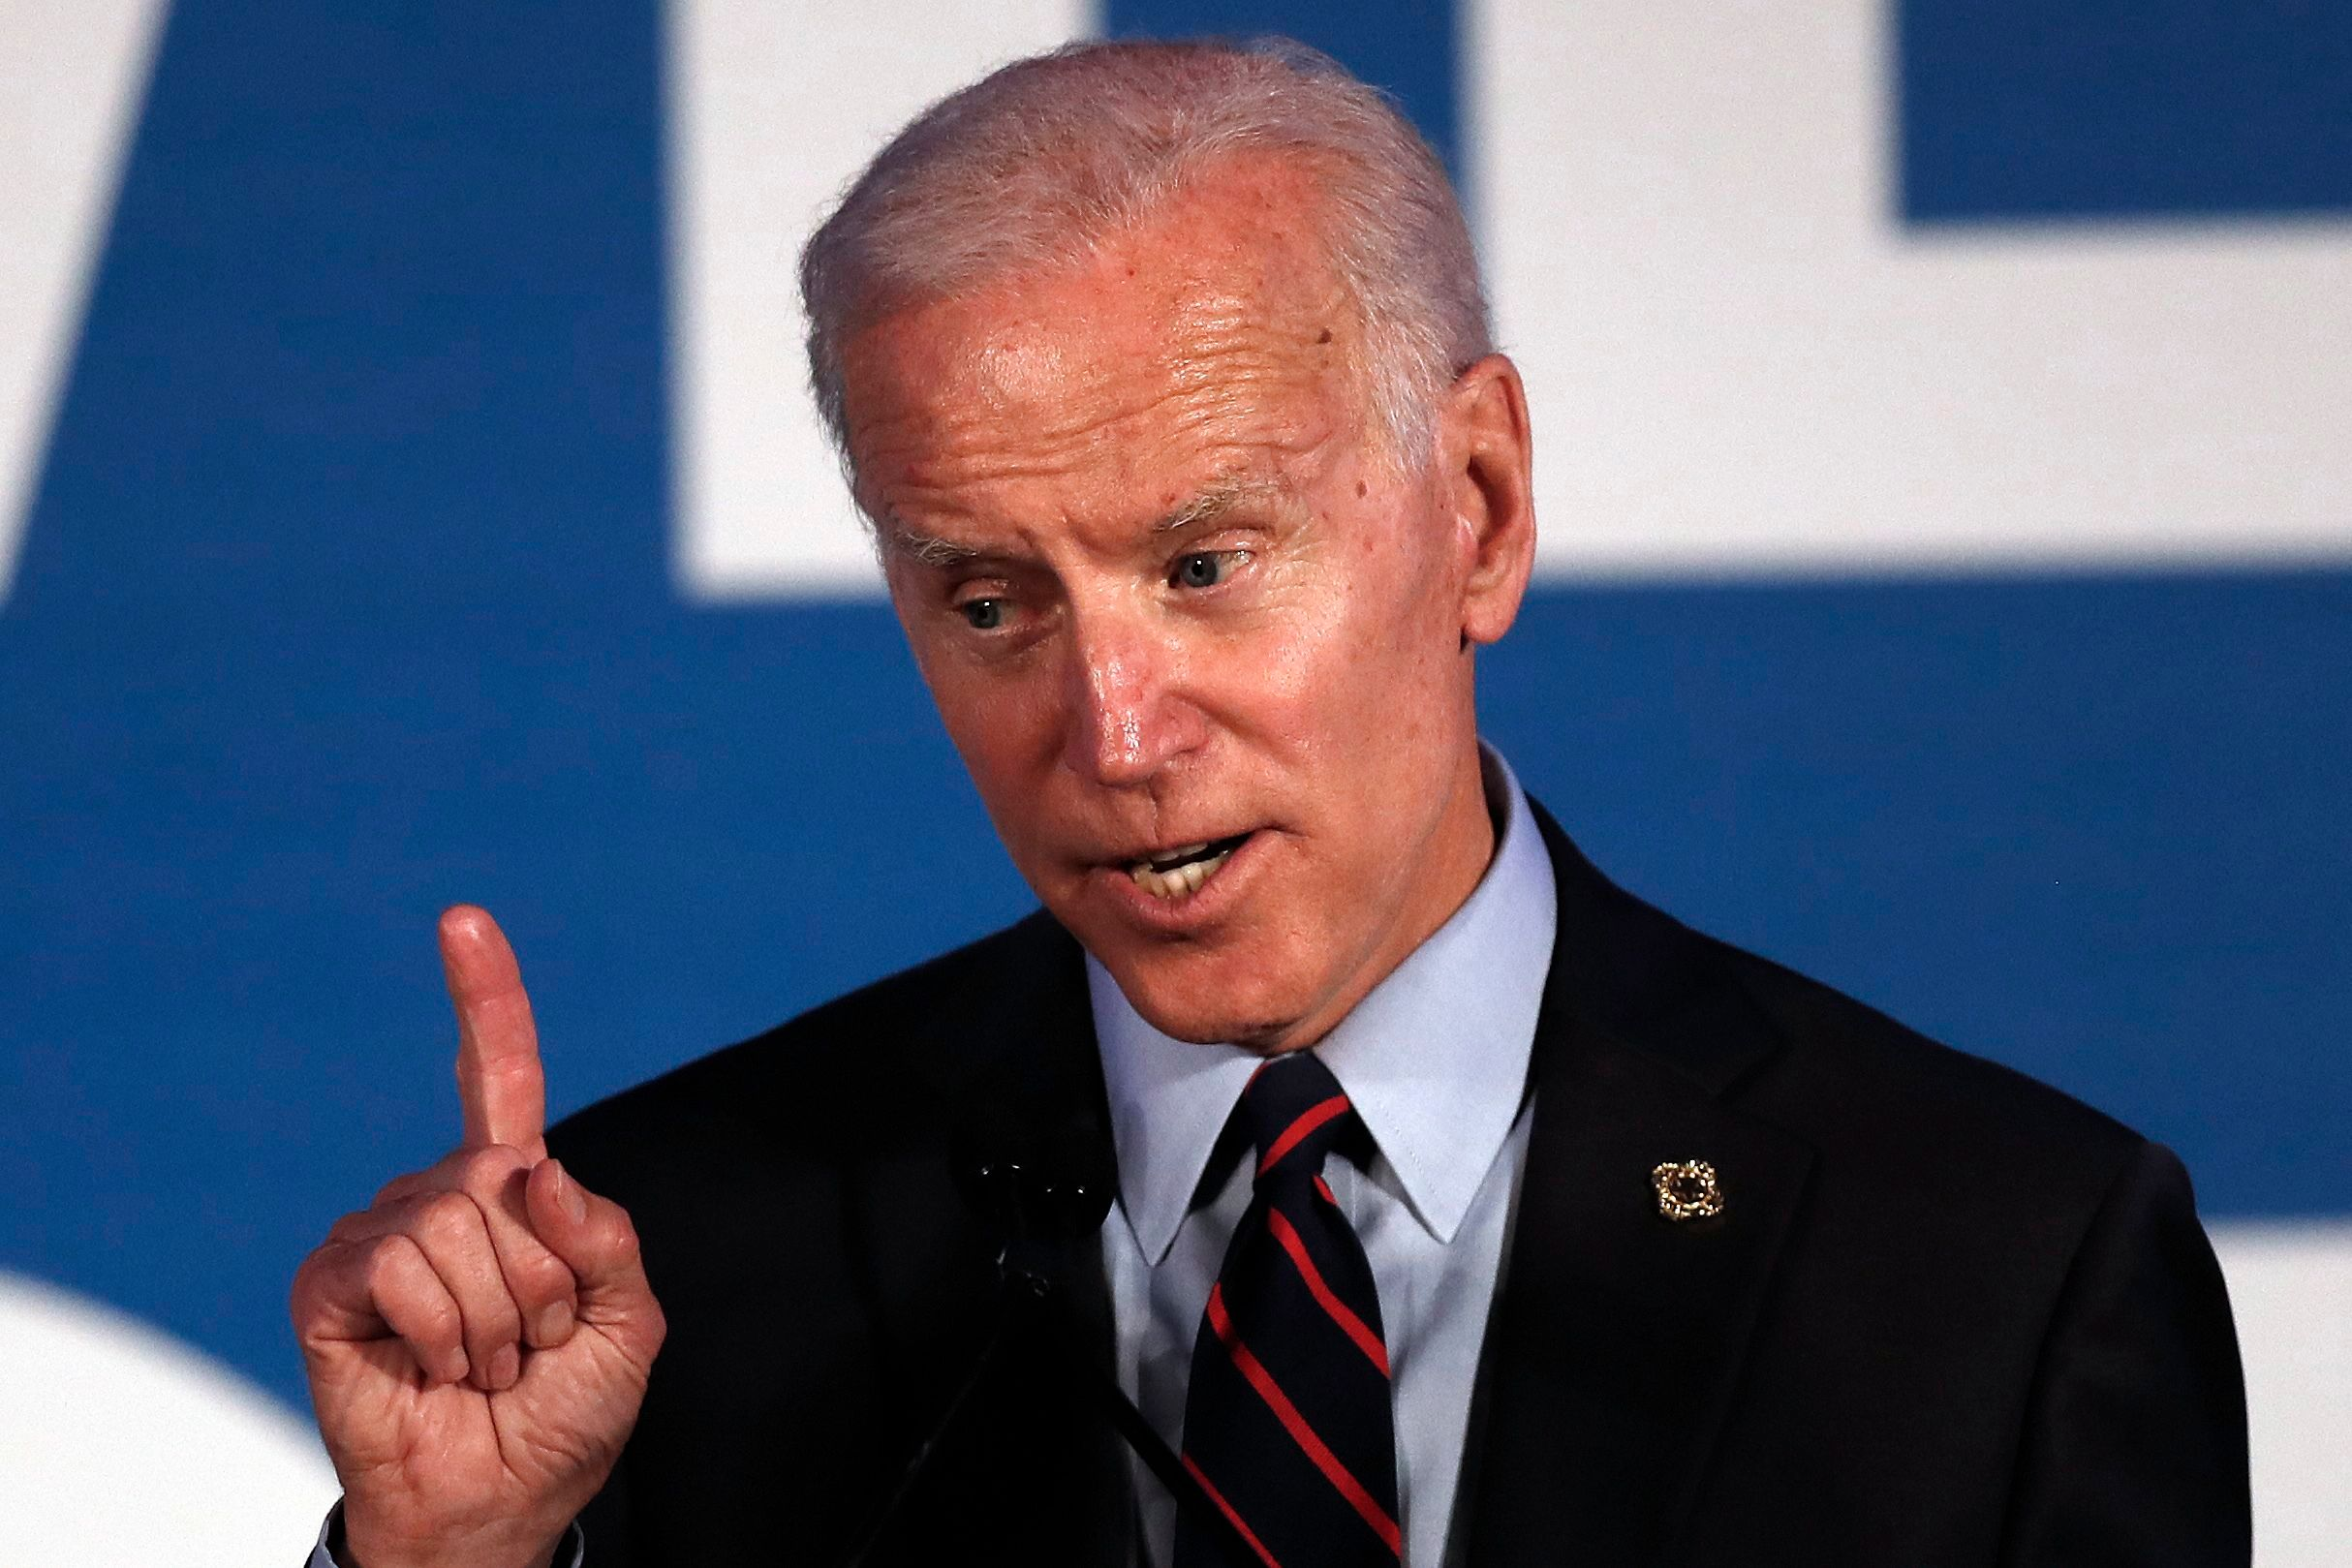 Is Joe Biden Trying To Gaslight Democratic Voters